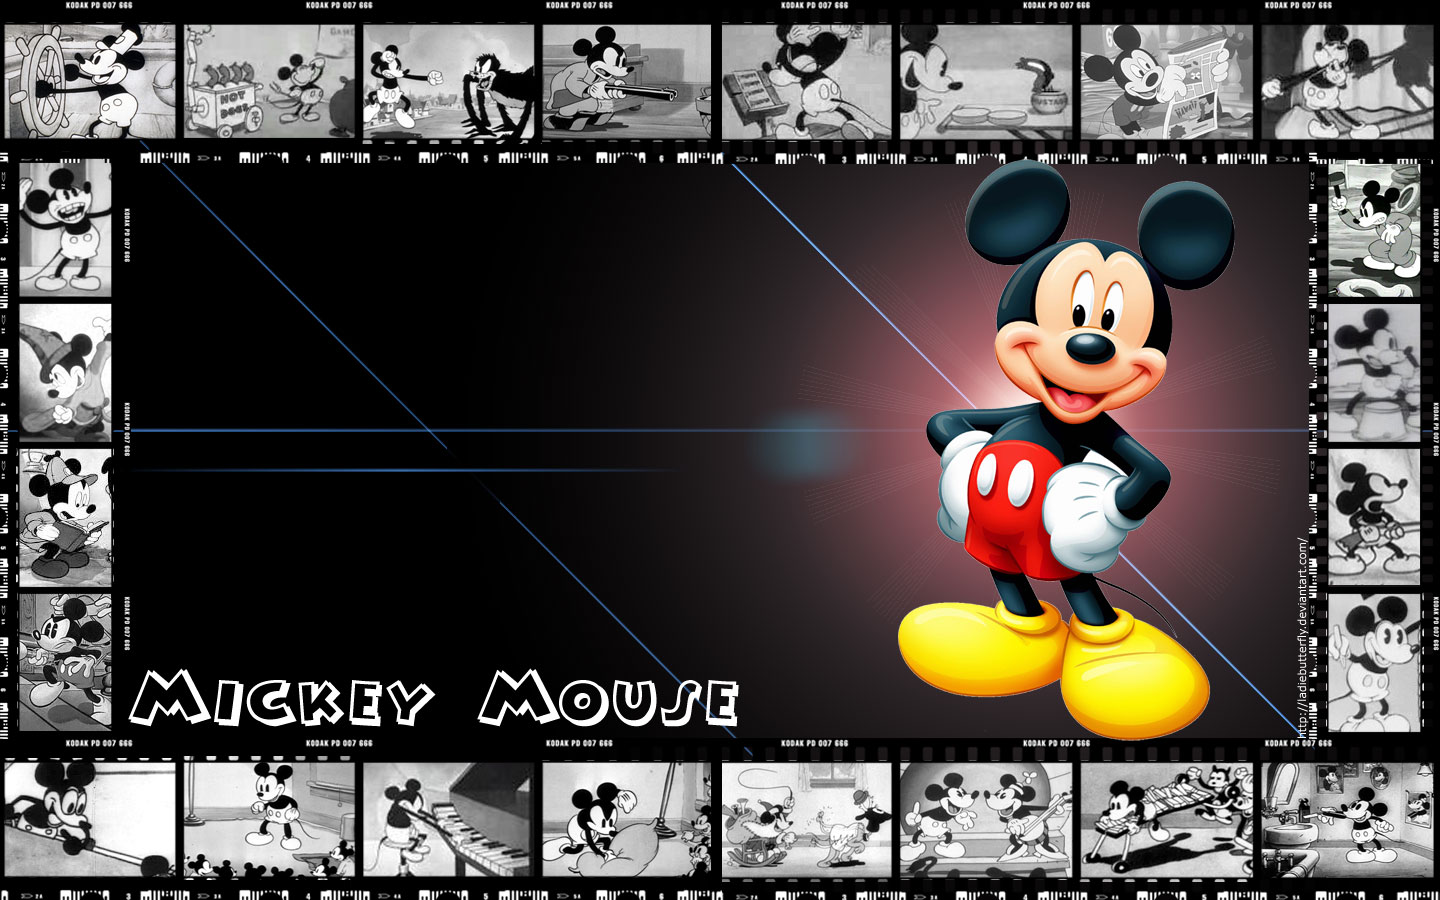 History of World: History of Mickey mouse